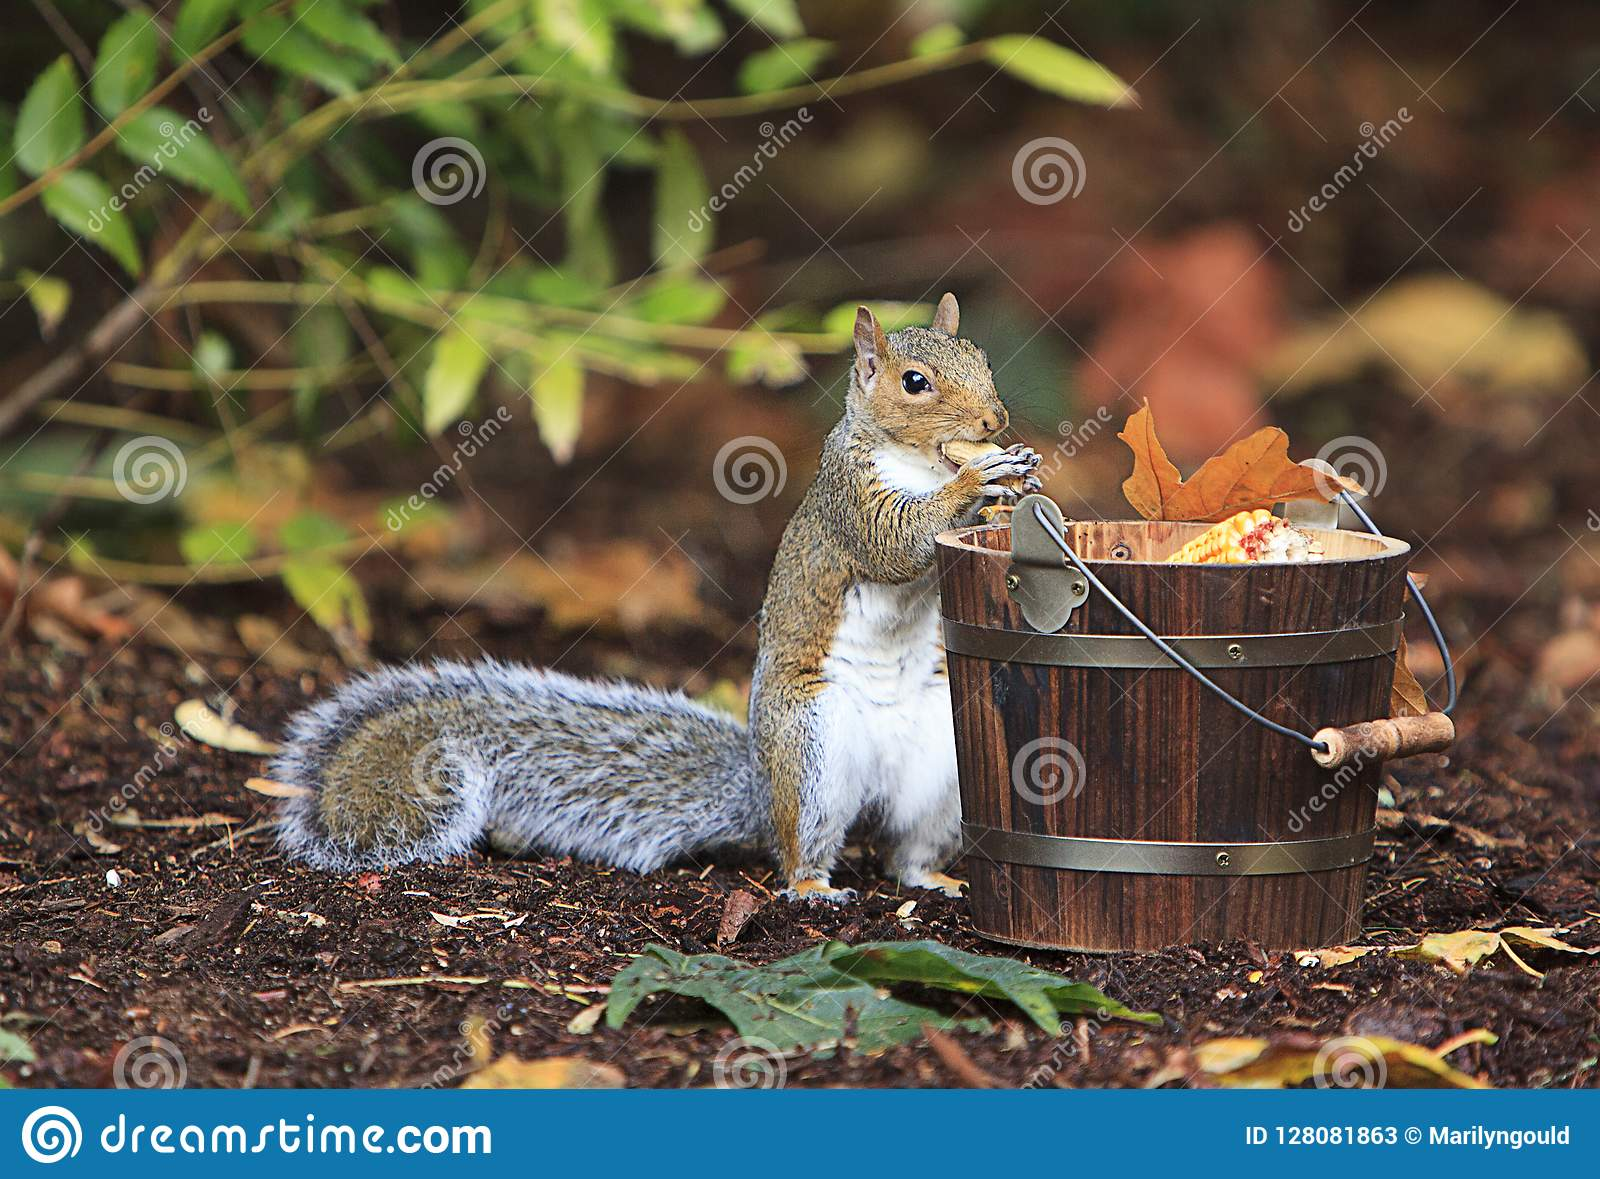 Grey Squirrel Eating Peanut from Wood Bucket